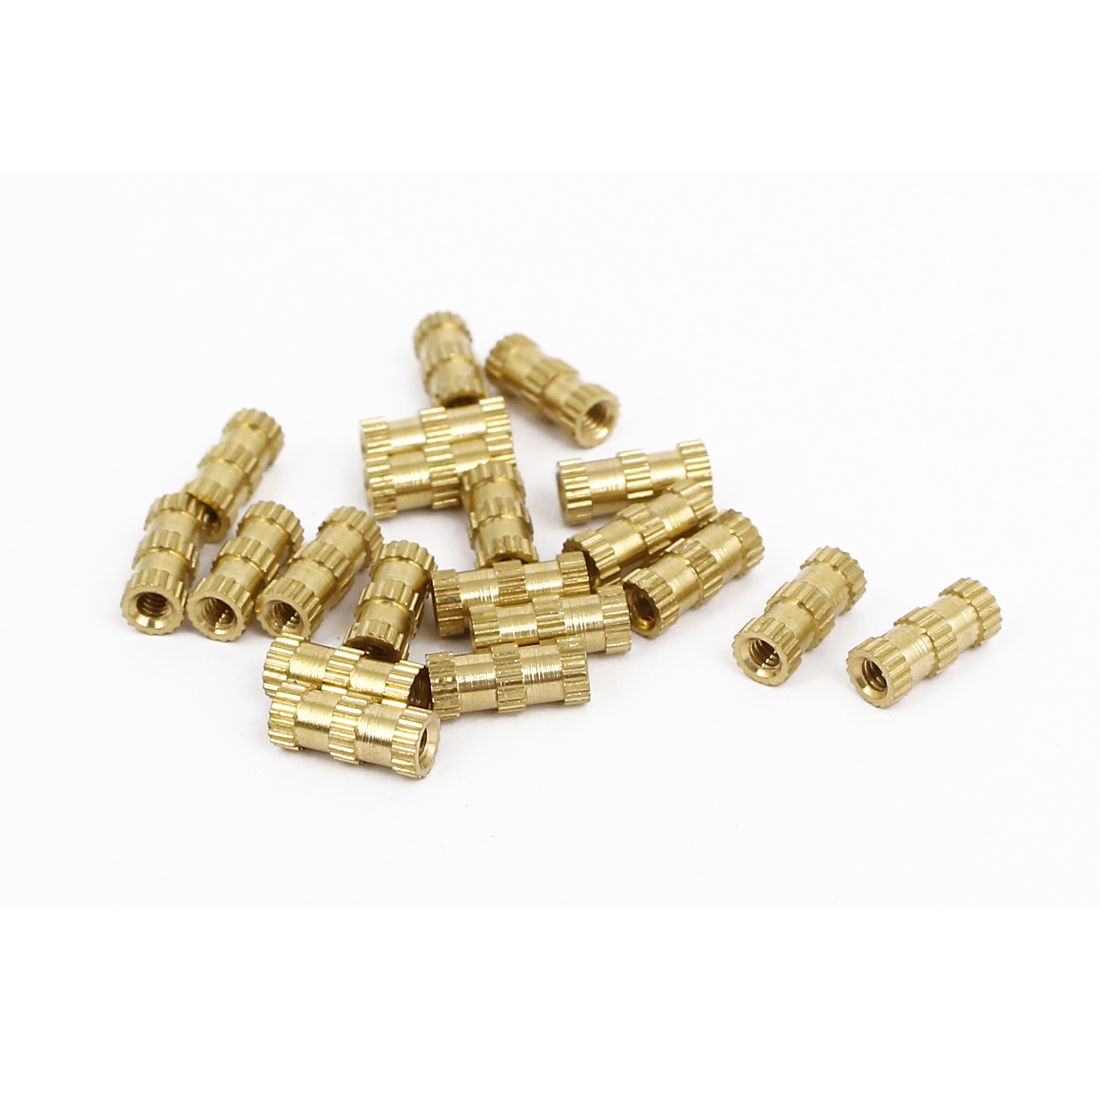 M2x8mmx3.5mm Brass Knurled Threaded Nut Insert Embedded Nuts Gold Tone 20pcs